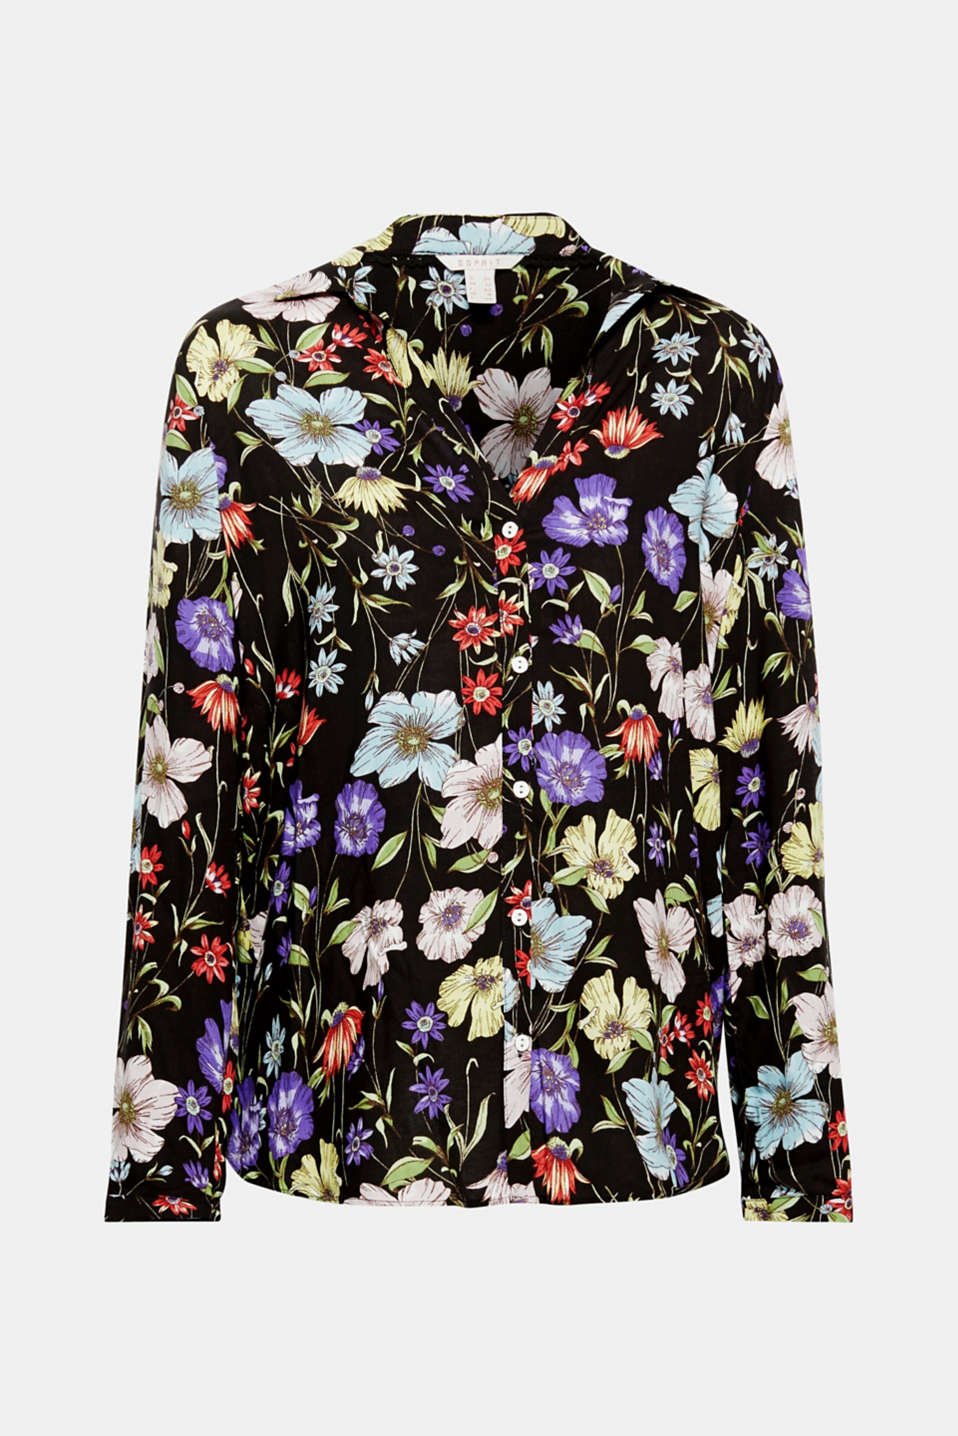 A gorgeous, colourful floral print on flowing material turns this casual shirt blouse with turn-up sleeves into a highlight!